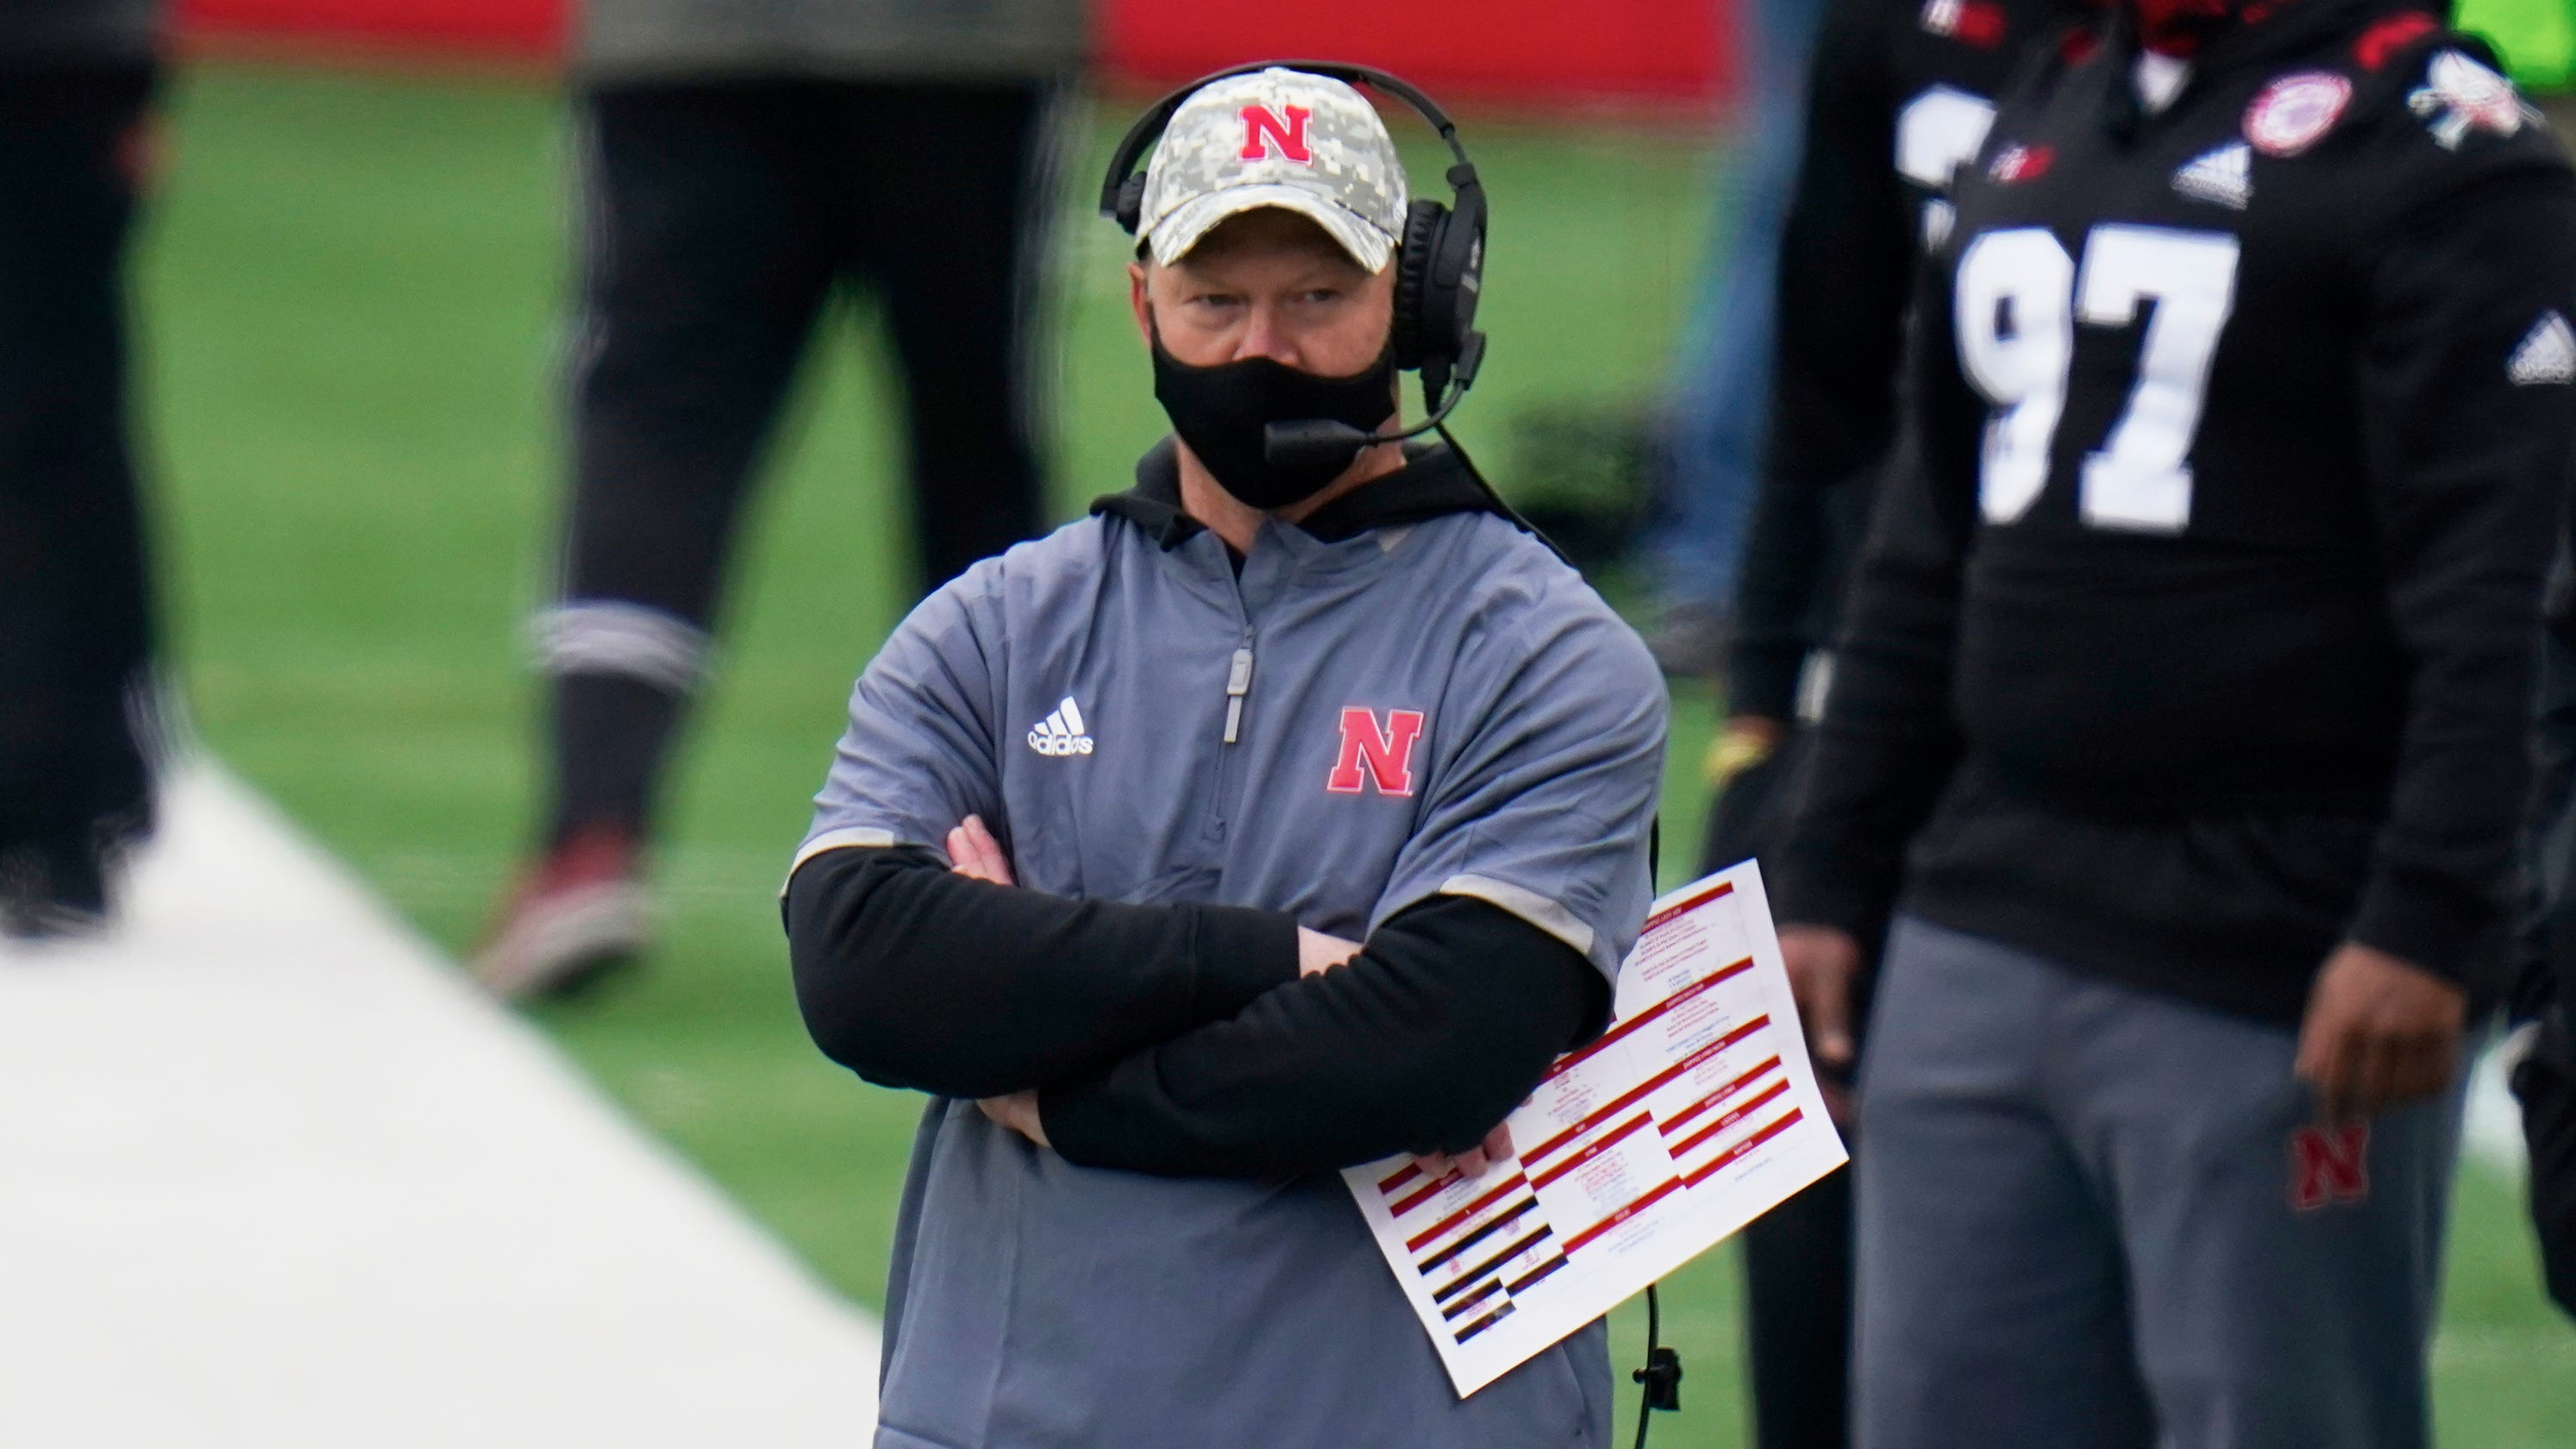 College football winners and losers from Week 12: Ohio State, Indiana, Nebraska and Northwestern